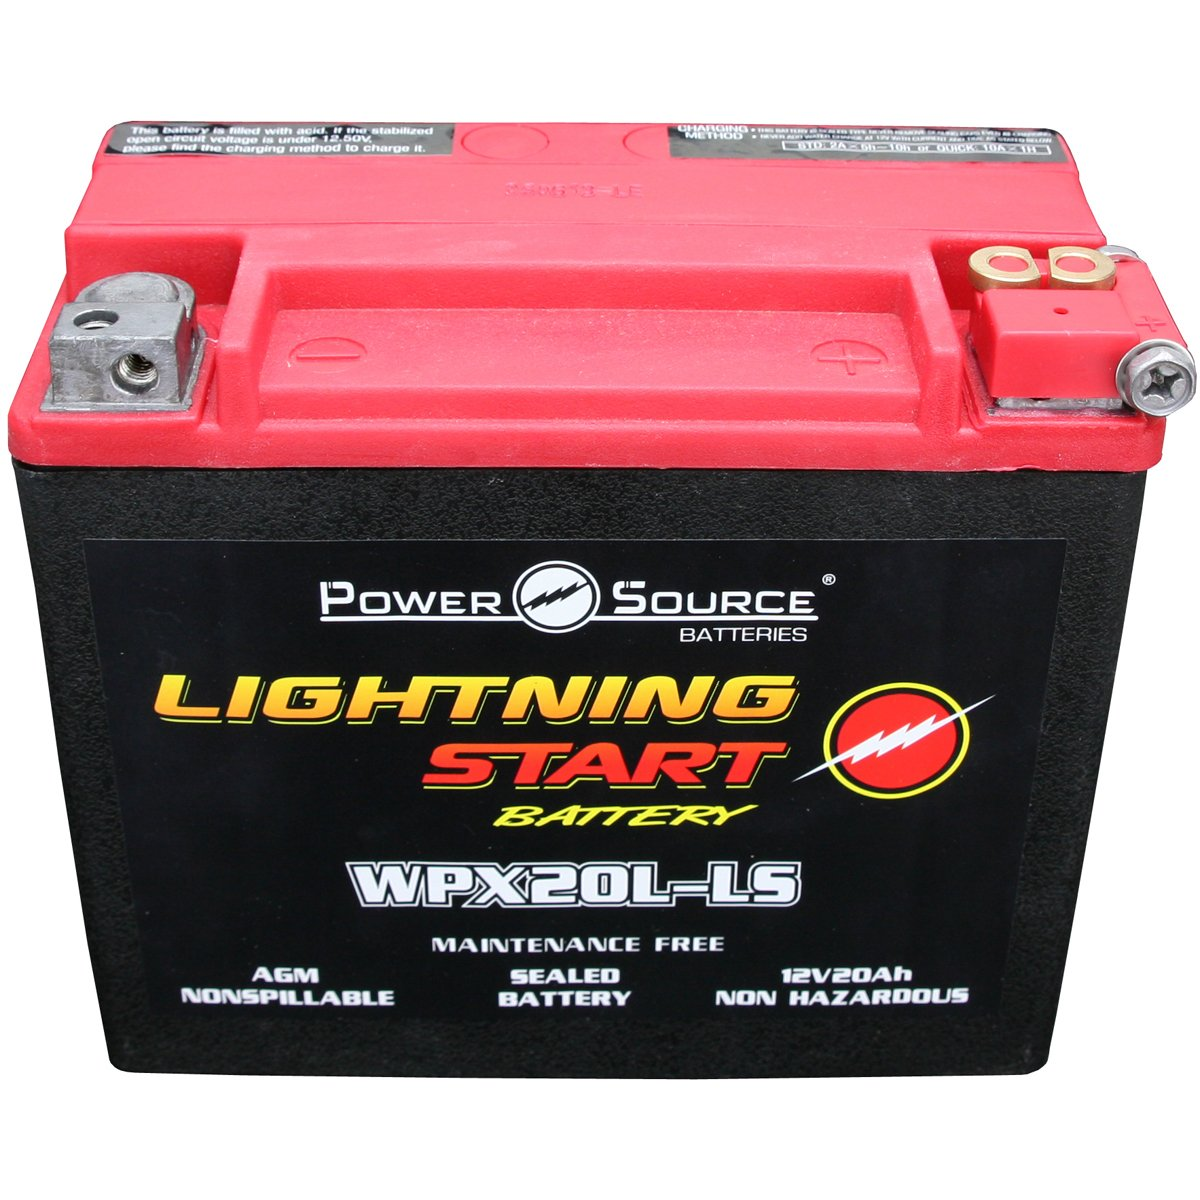 YTX20HL-BS, YTX20HL, YTX20L-BS, YTX20L, GYZ20HL, 4011496 Replacement Battery 500cca Ultra High Performance Lightning Start WPX20L-LS Sealed AGM for Motorcycle, ATV, Jet Ski, Snowmobile, Side x Side, Honda, Yamaha, Kawasaki, Ski-Doo, Pure Polaris, Can-Am, B